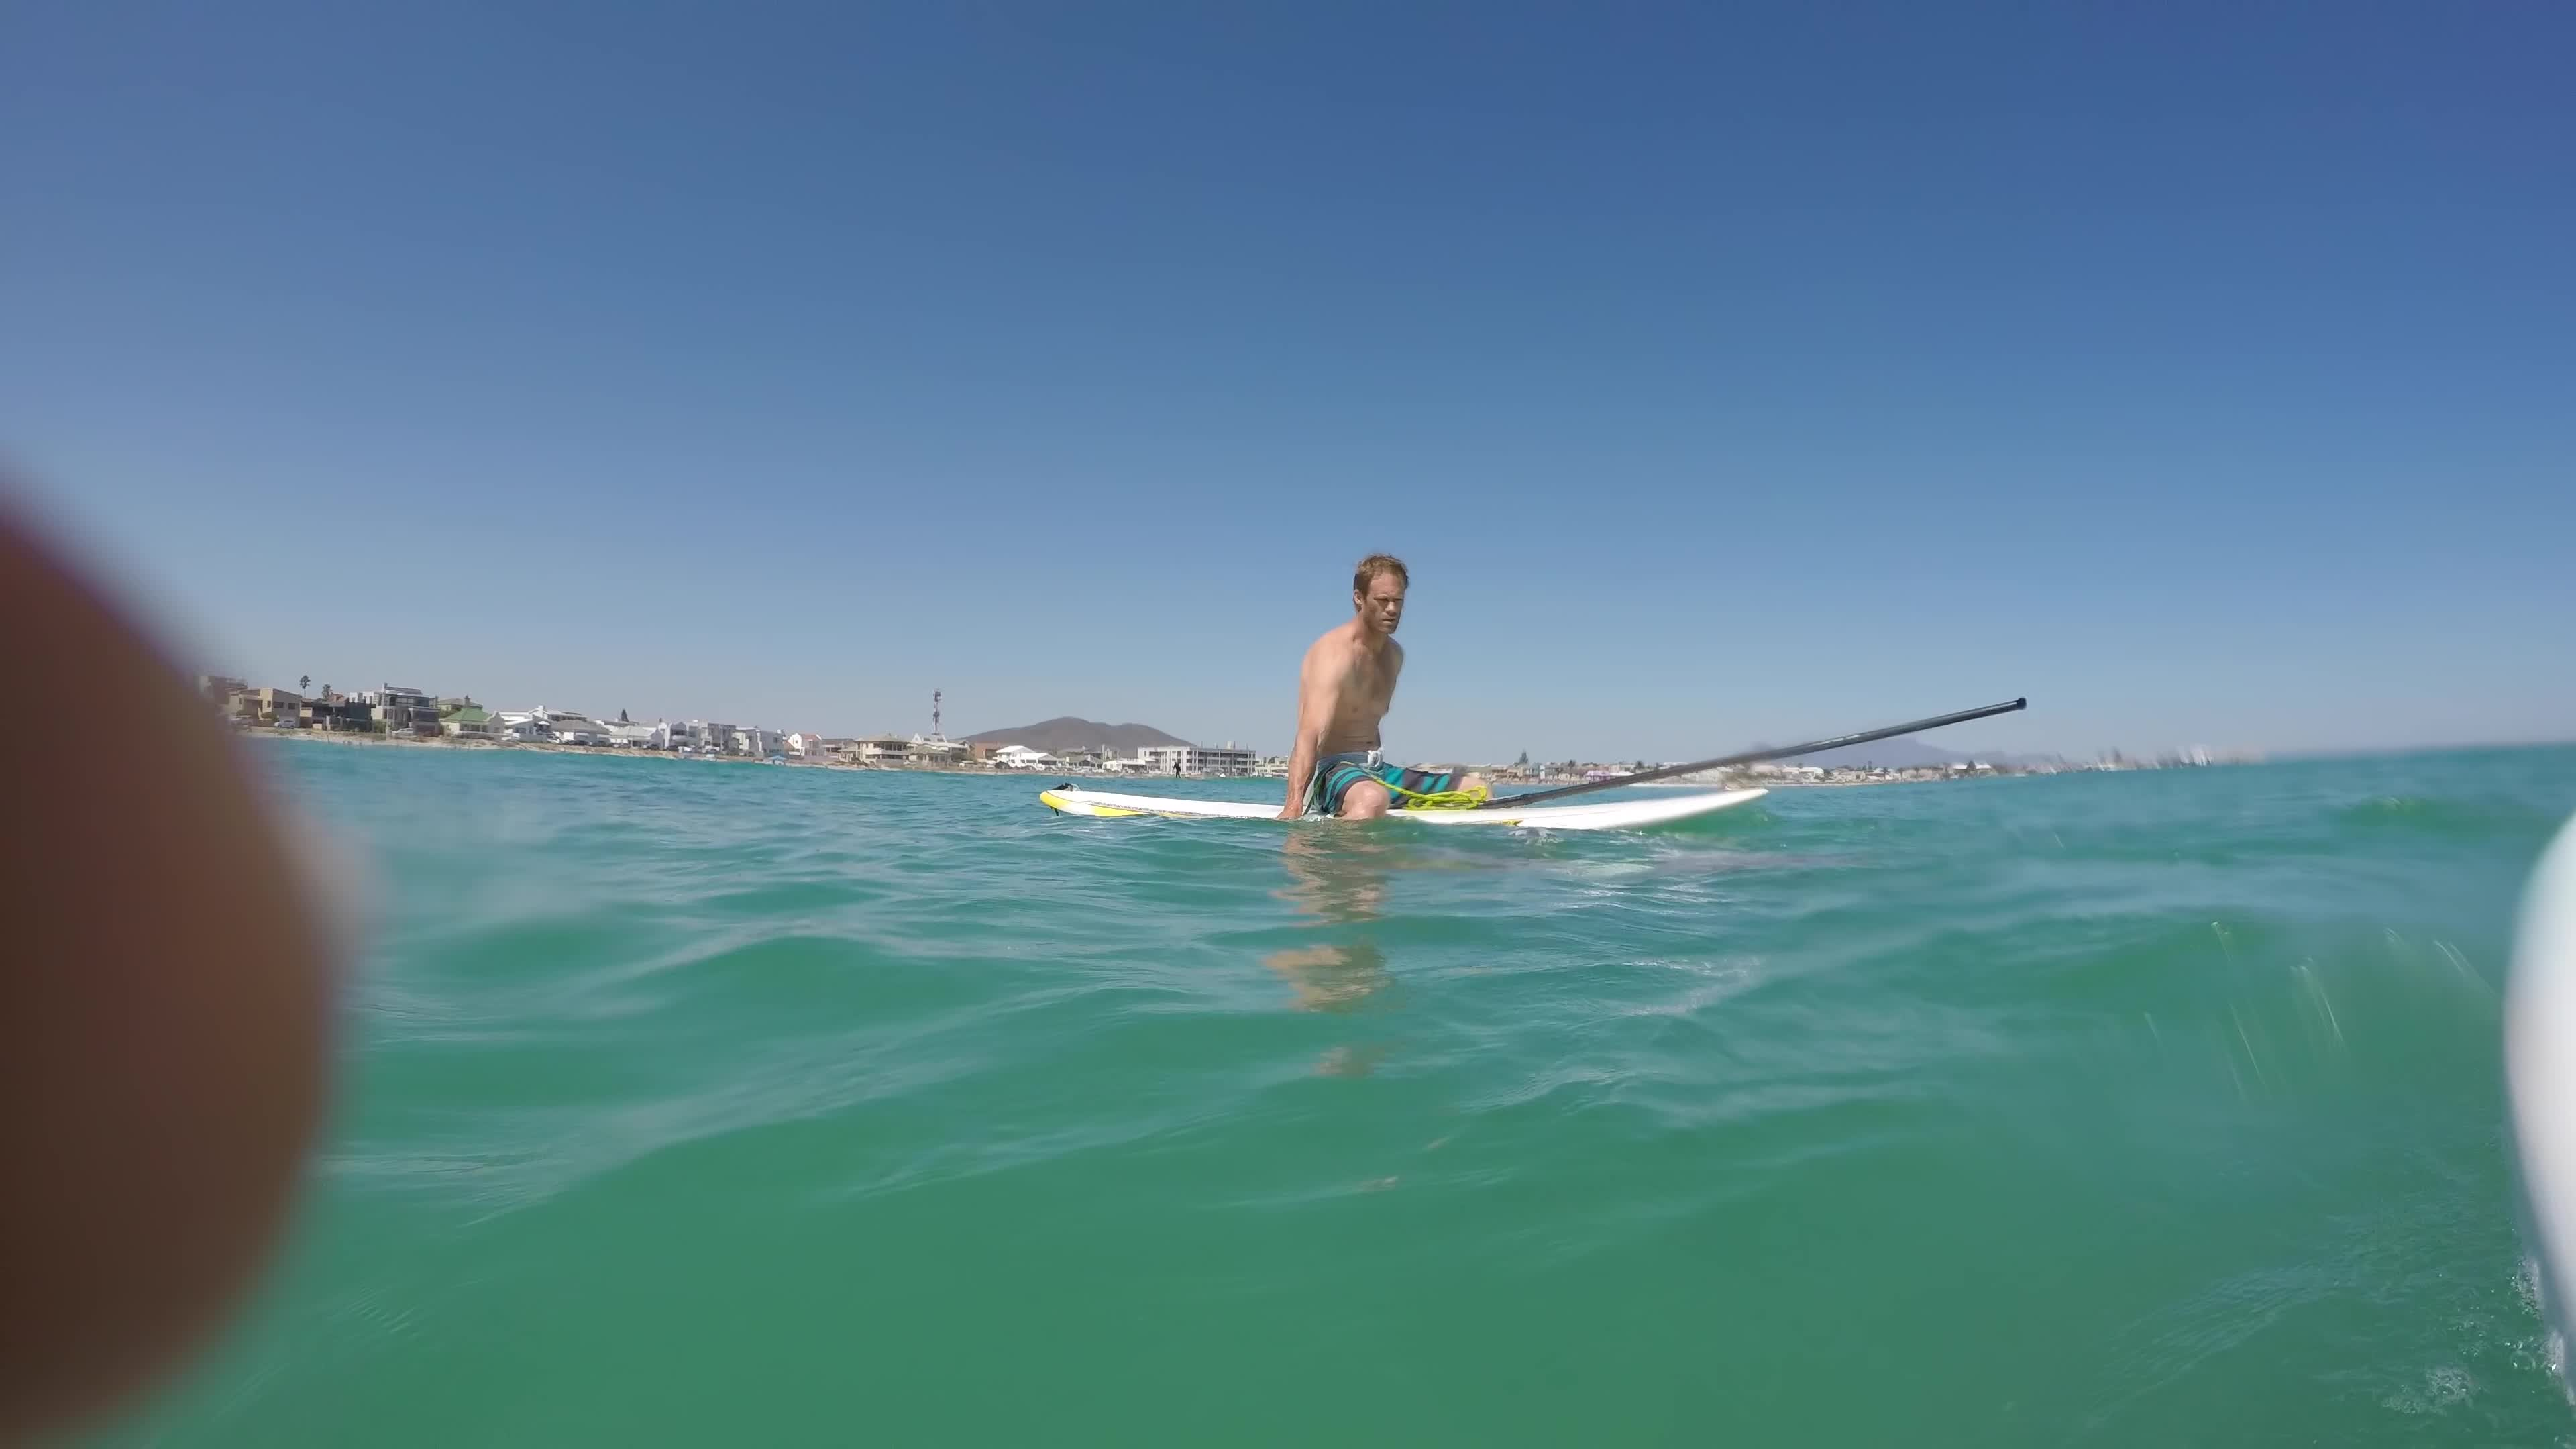 James Taylor, Sports, amazing, cape town, giant squid, incredible, kraken, melkbosstrand, ocean, paddle board, sup, surf, weird animals, Giant squid wraps its tentacles around my paddle board! GIFs